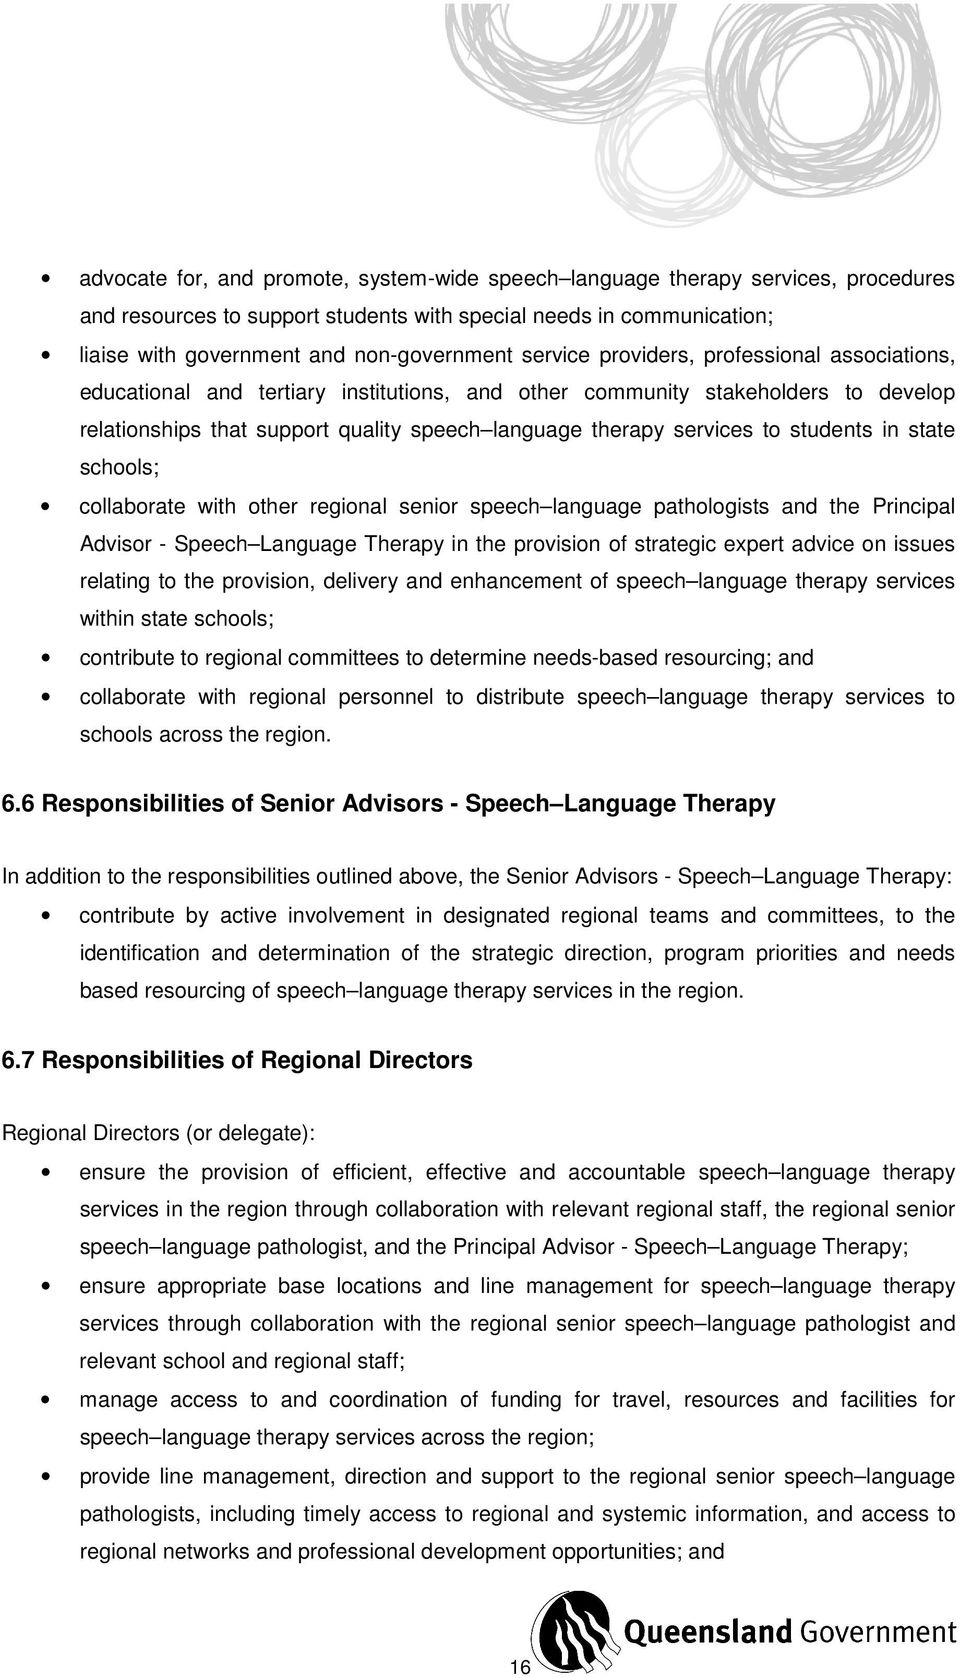 students in state schools; collaborate with other regional senior speech language pathologists and the Principal Advisor - Speech Language Therapy in the provision of strategic expert advice on